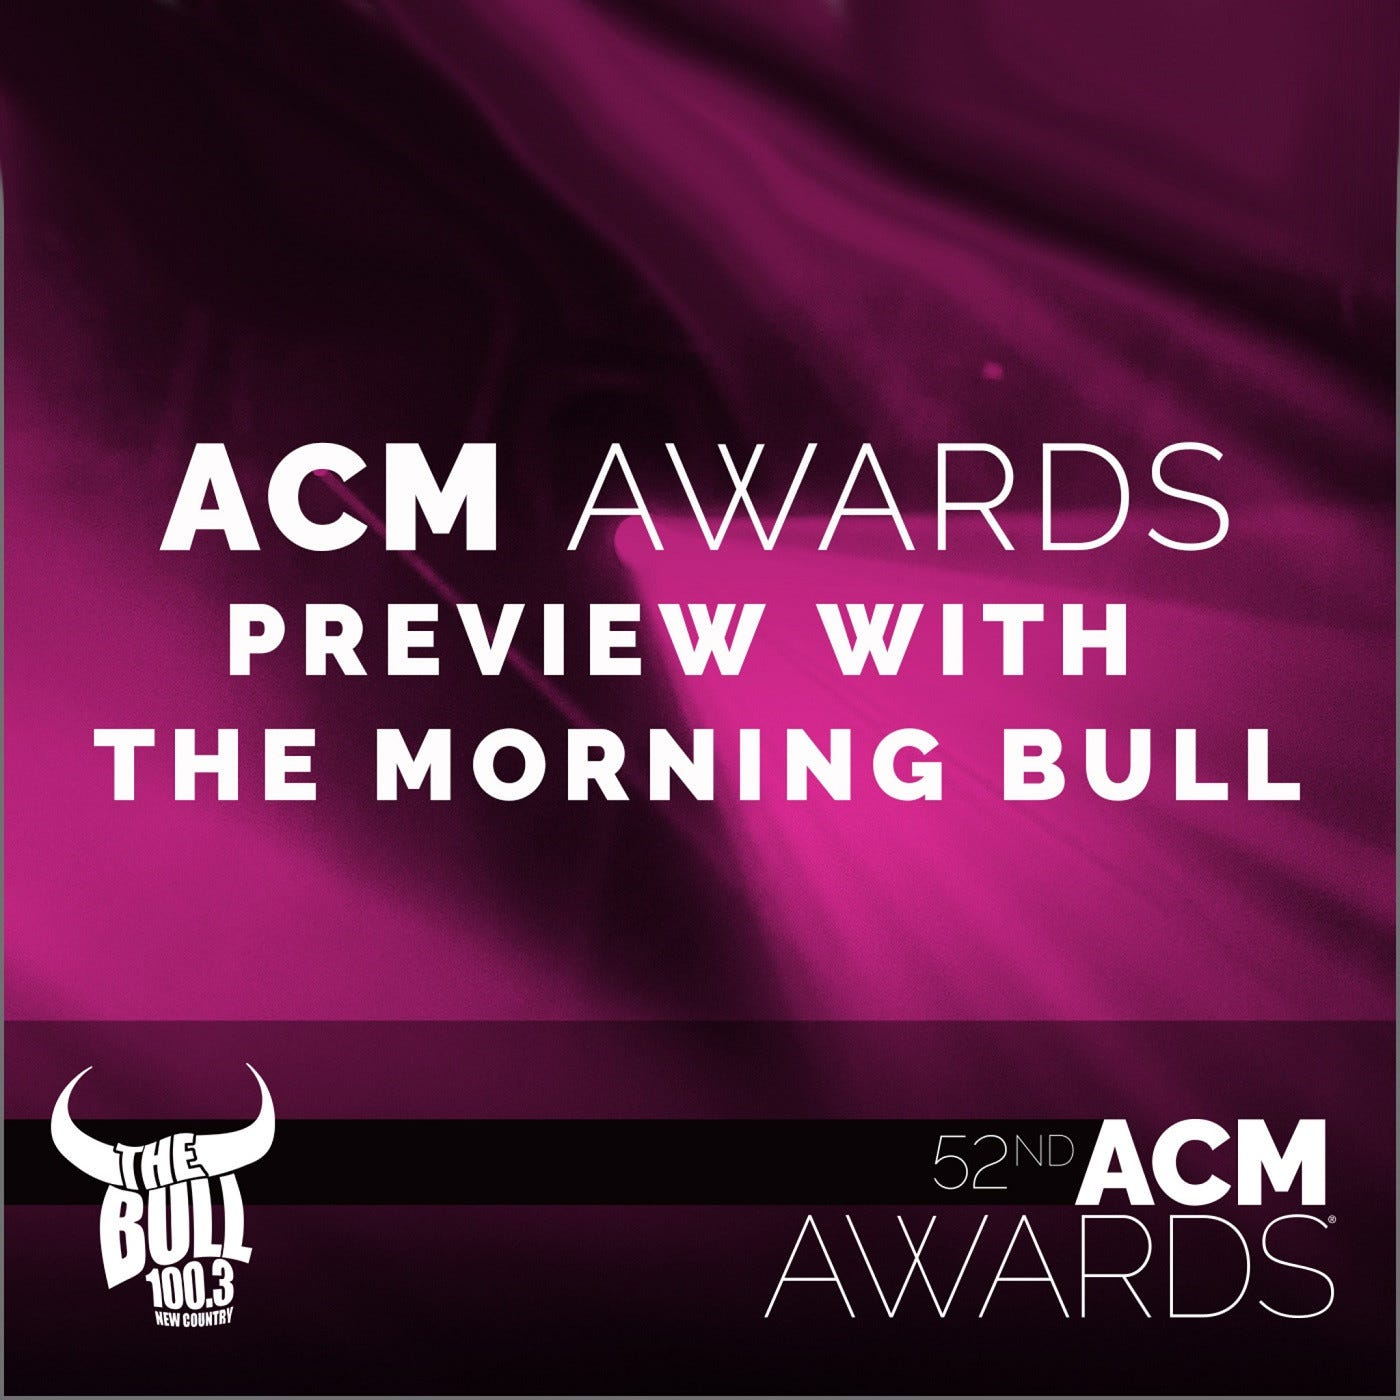 ACM Awards Preview with The Morning Bull